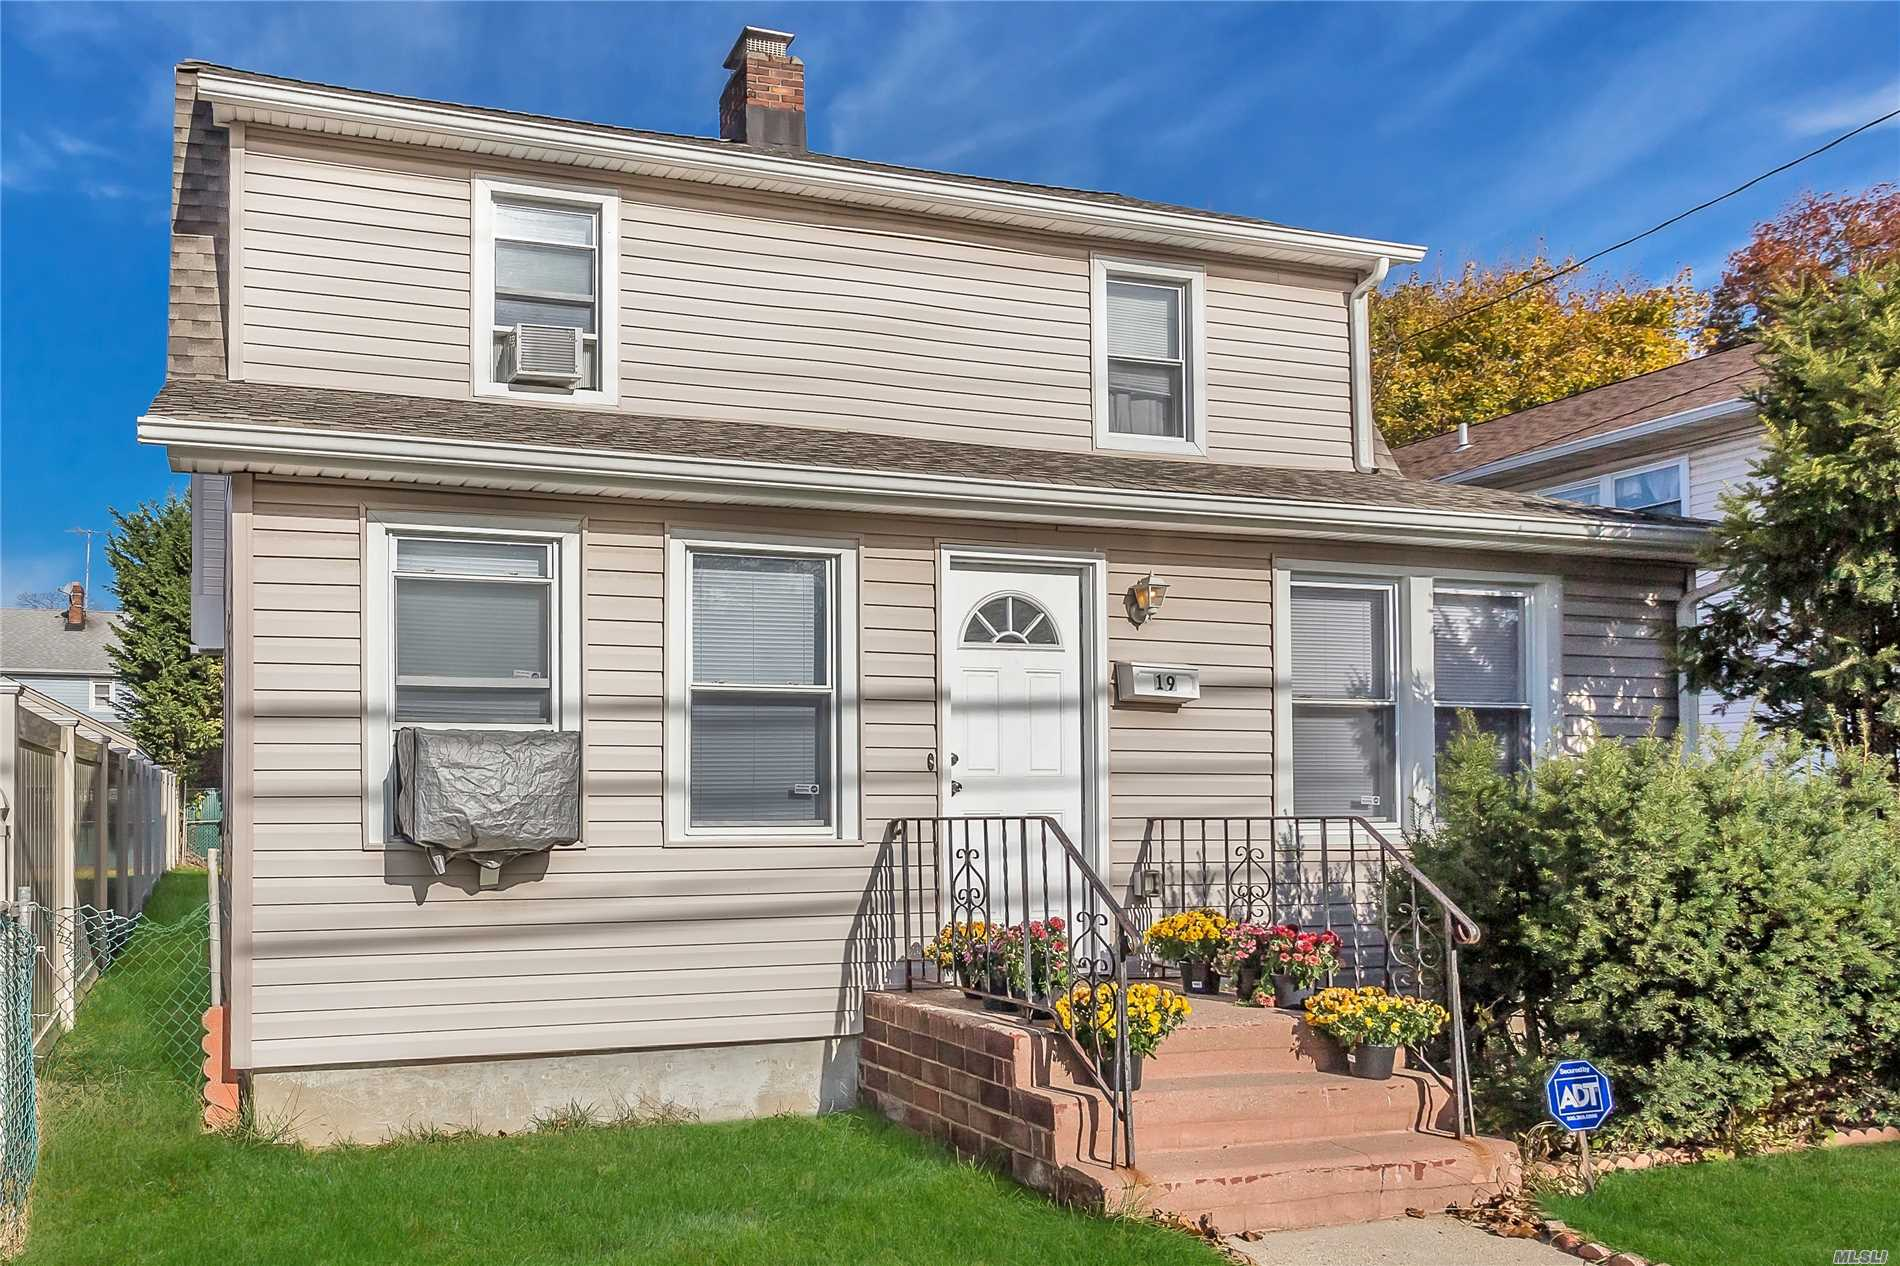 Newly & Completely Renovated In 2013, This Colonial Offers It All. Situated On A Private Residential Block, 5 Blocks From Garden City & 3 Blocks From Lirr. Features Open Floor Plan W/ Tons Of Natural Light. Granite Eik W/ Ss Appliances, Hardwood Floors Thru-Out, Fireplace, Ground Floor Bedroom & Full Bath. Spacious Master +2 Large Bedrooms & Full Bath On 2nd Floor. Private Rear Ose To Finished Basement & Utili. Hi-Hat Lighting Thru-Out. Gas Heat & Cooking. Long Driveway+2.5 Car Garage. Laundry.